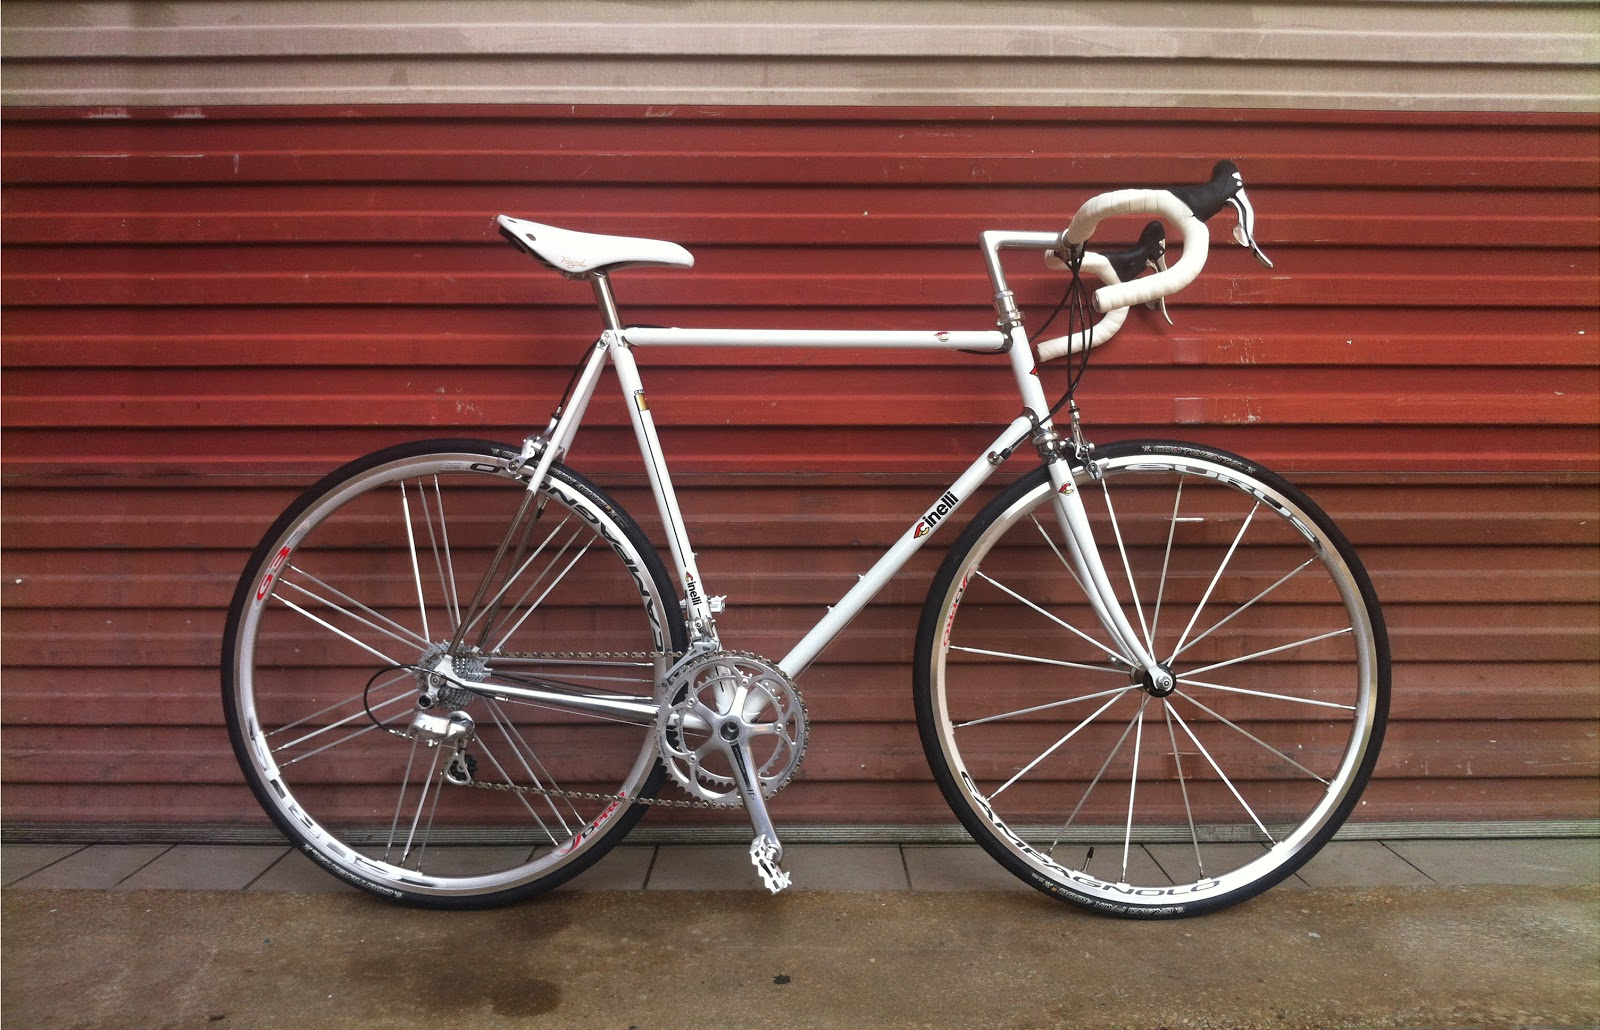 Cinelli Only: 2012 Super Corsa, and Serial Numbers